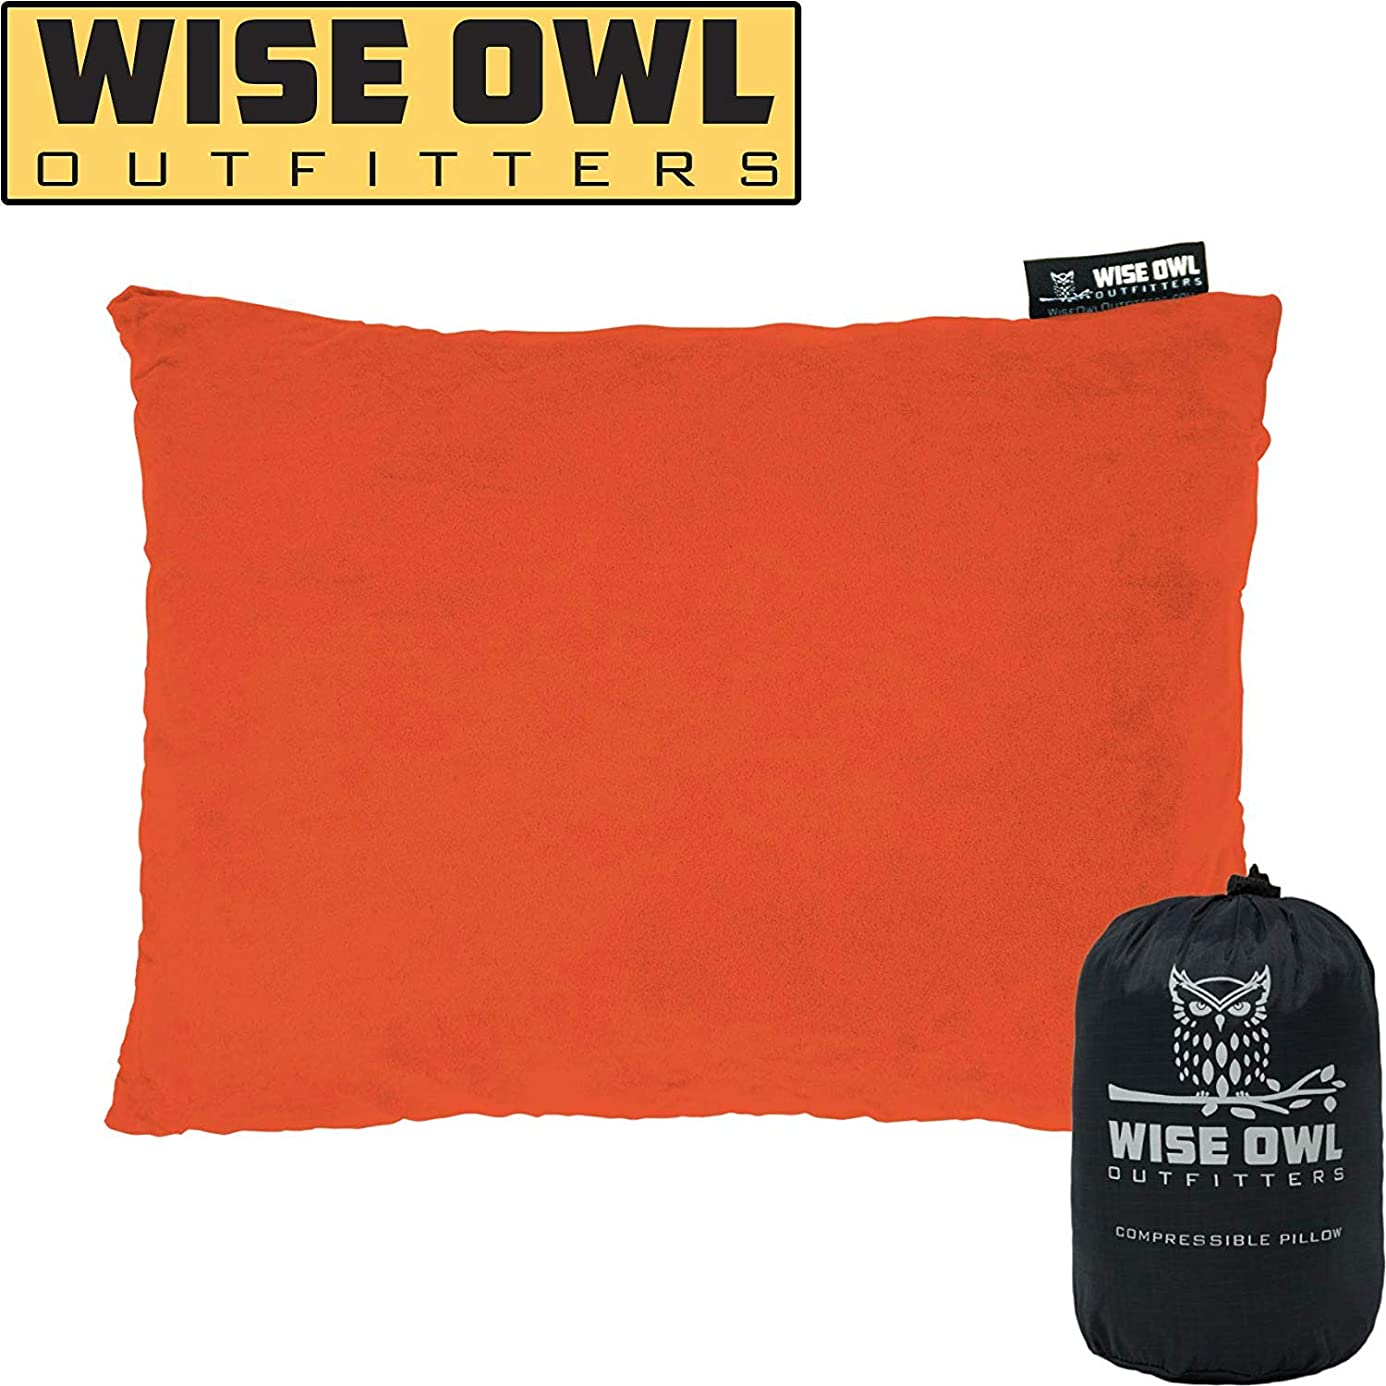 Wise Owl Outfitters Camping Pillow Compressible Foam Pillows – Use When Sleeping in Car, Plane Travel, Hammock Bed & Camp – Great for Kids - Compact Small, Medium & Large Size - Portable Bag